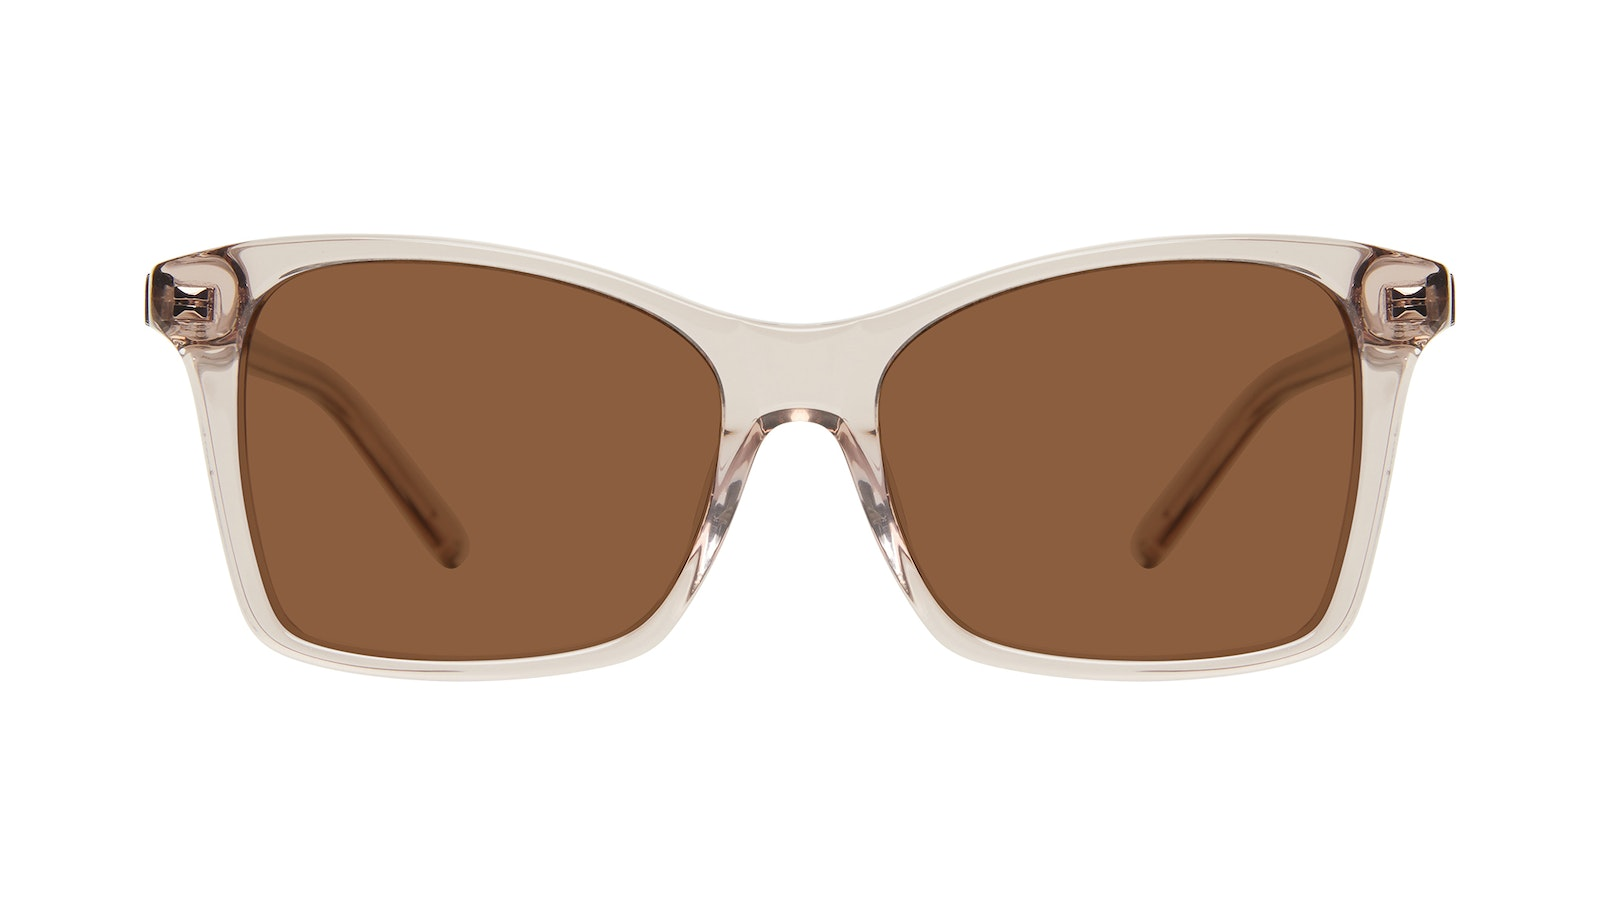 Affordable Fashion Glasses Square Sunglasses Women Cadence Sand